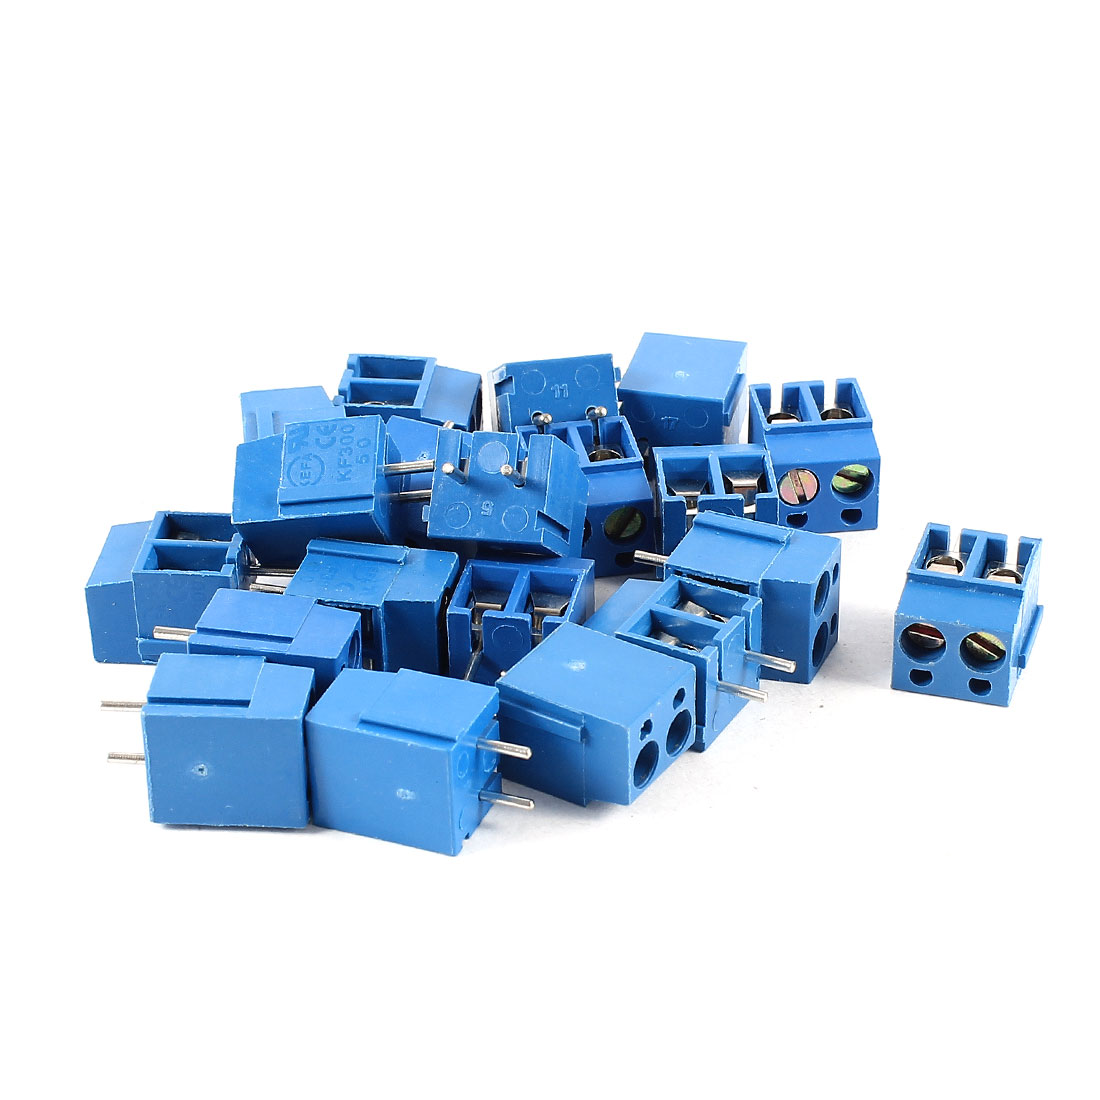 20 Pcs 2 Terminal 5mm Pitch PCB Screw Terminal Block Connector 300V 16A AWG14-22 Blue